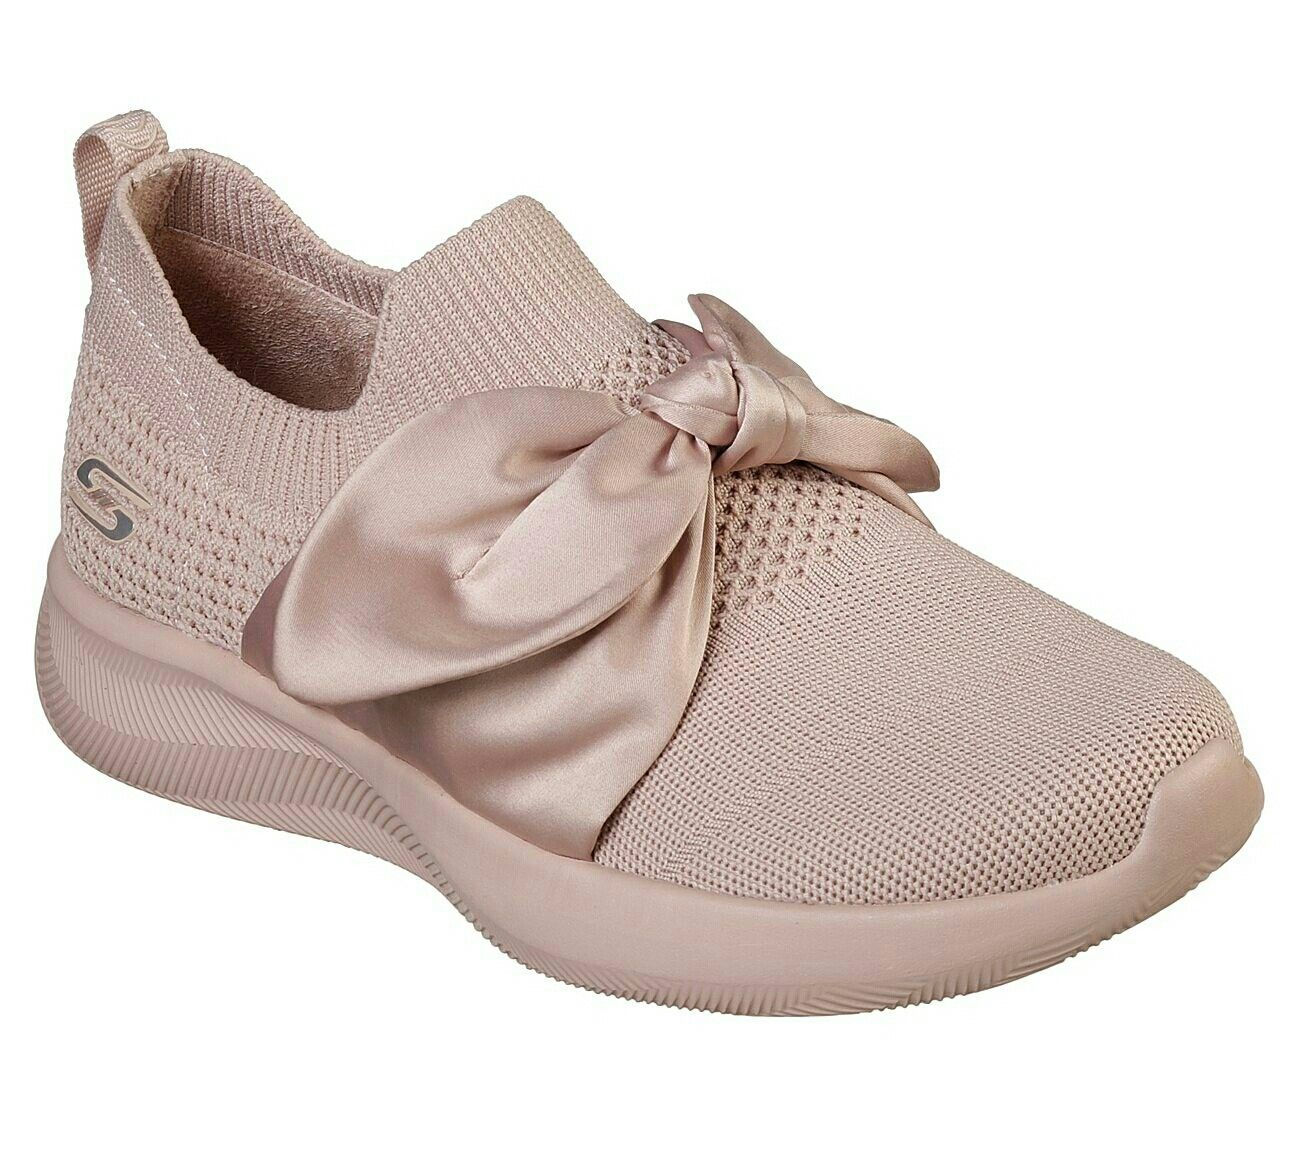 Pin by Kaley on Shoes | Pink sneakers, Leather shoes woman